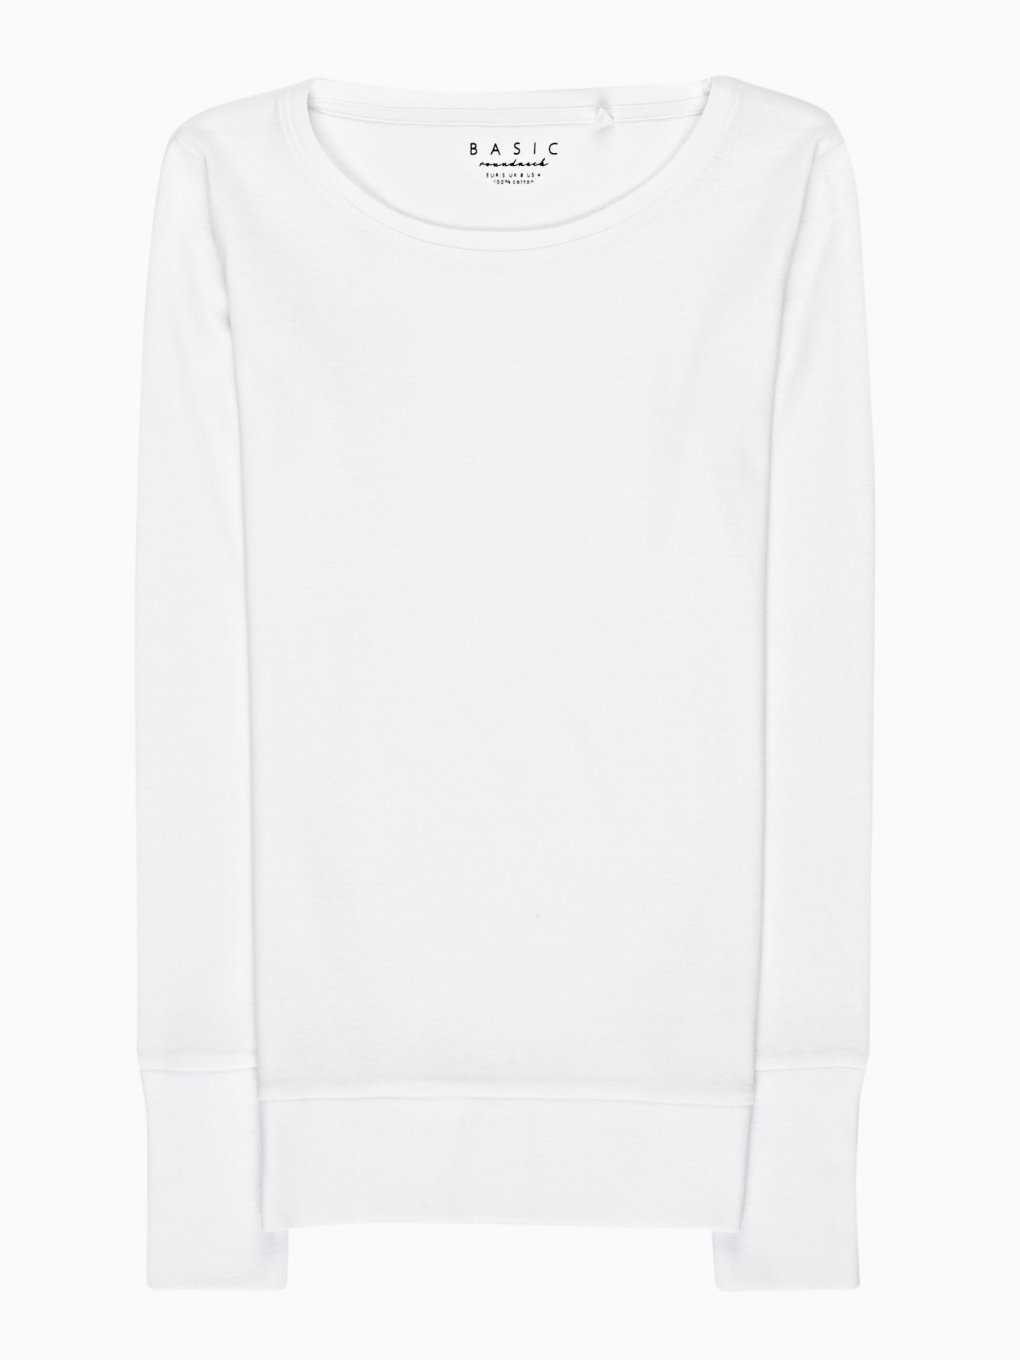 Basic rib-knit t-shirt